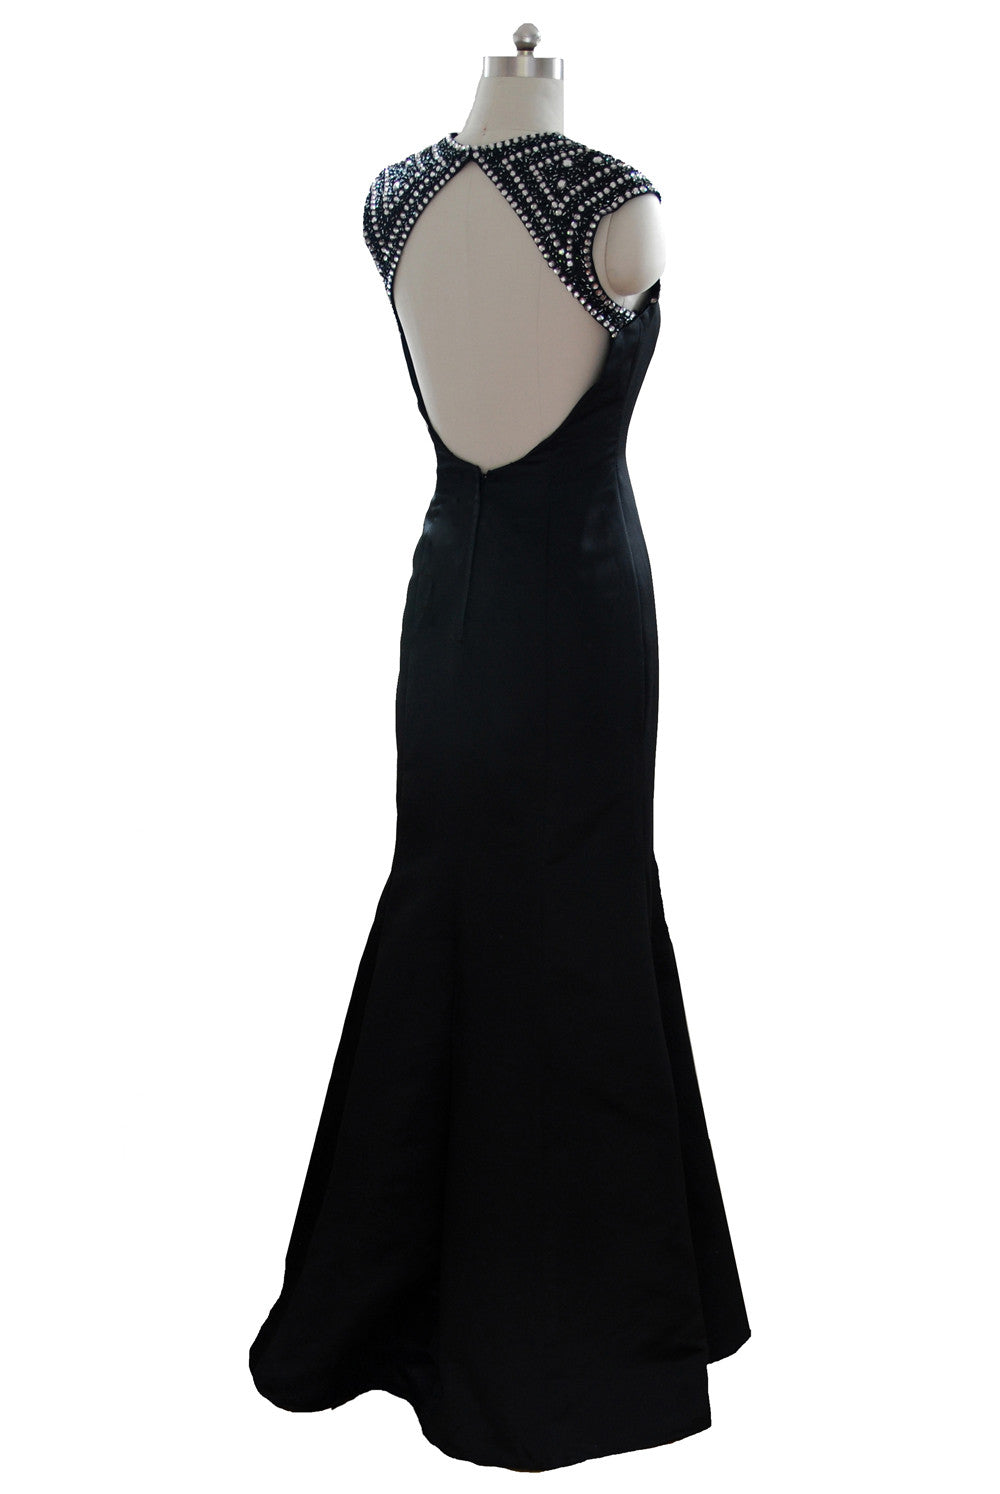 Sheer V neckline Open backed full length satin dress